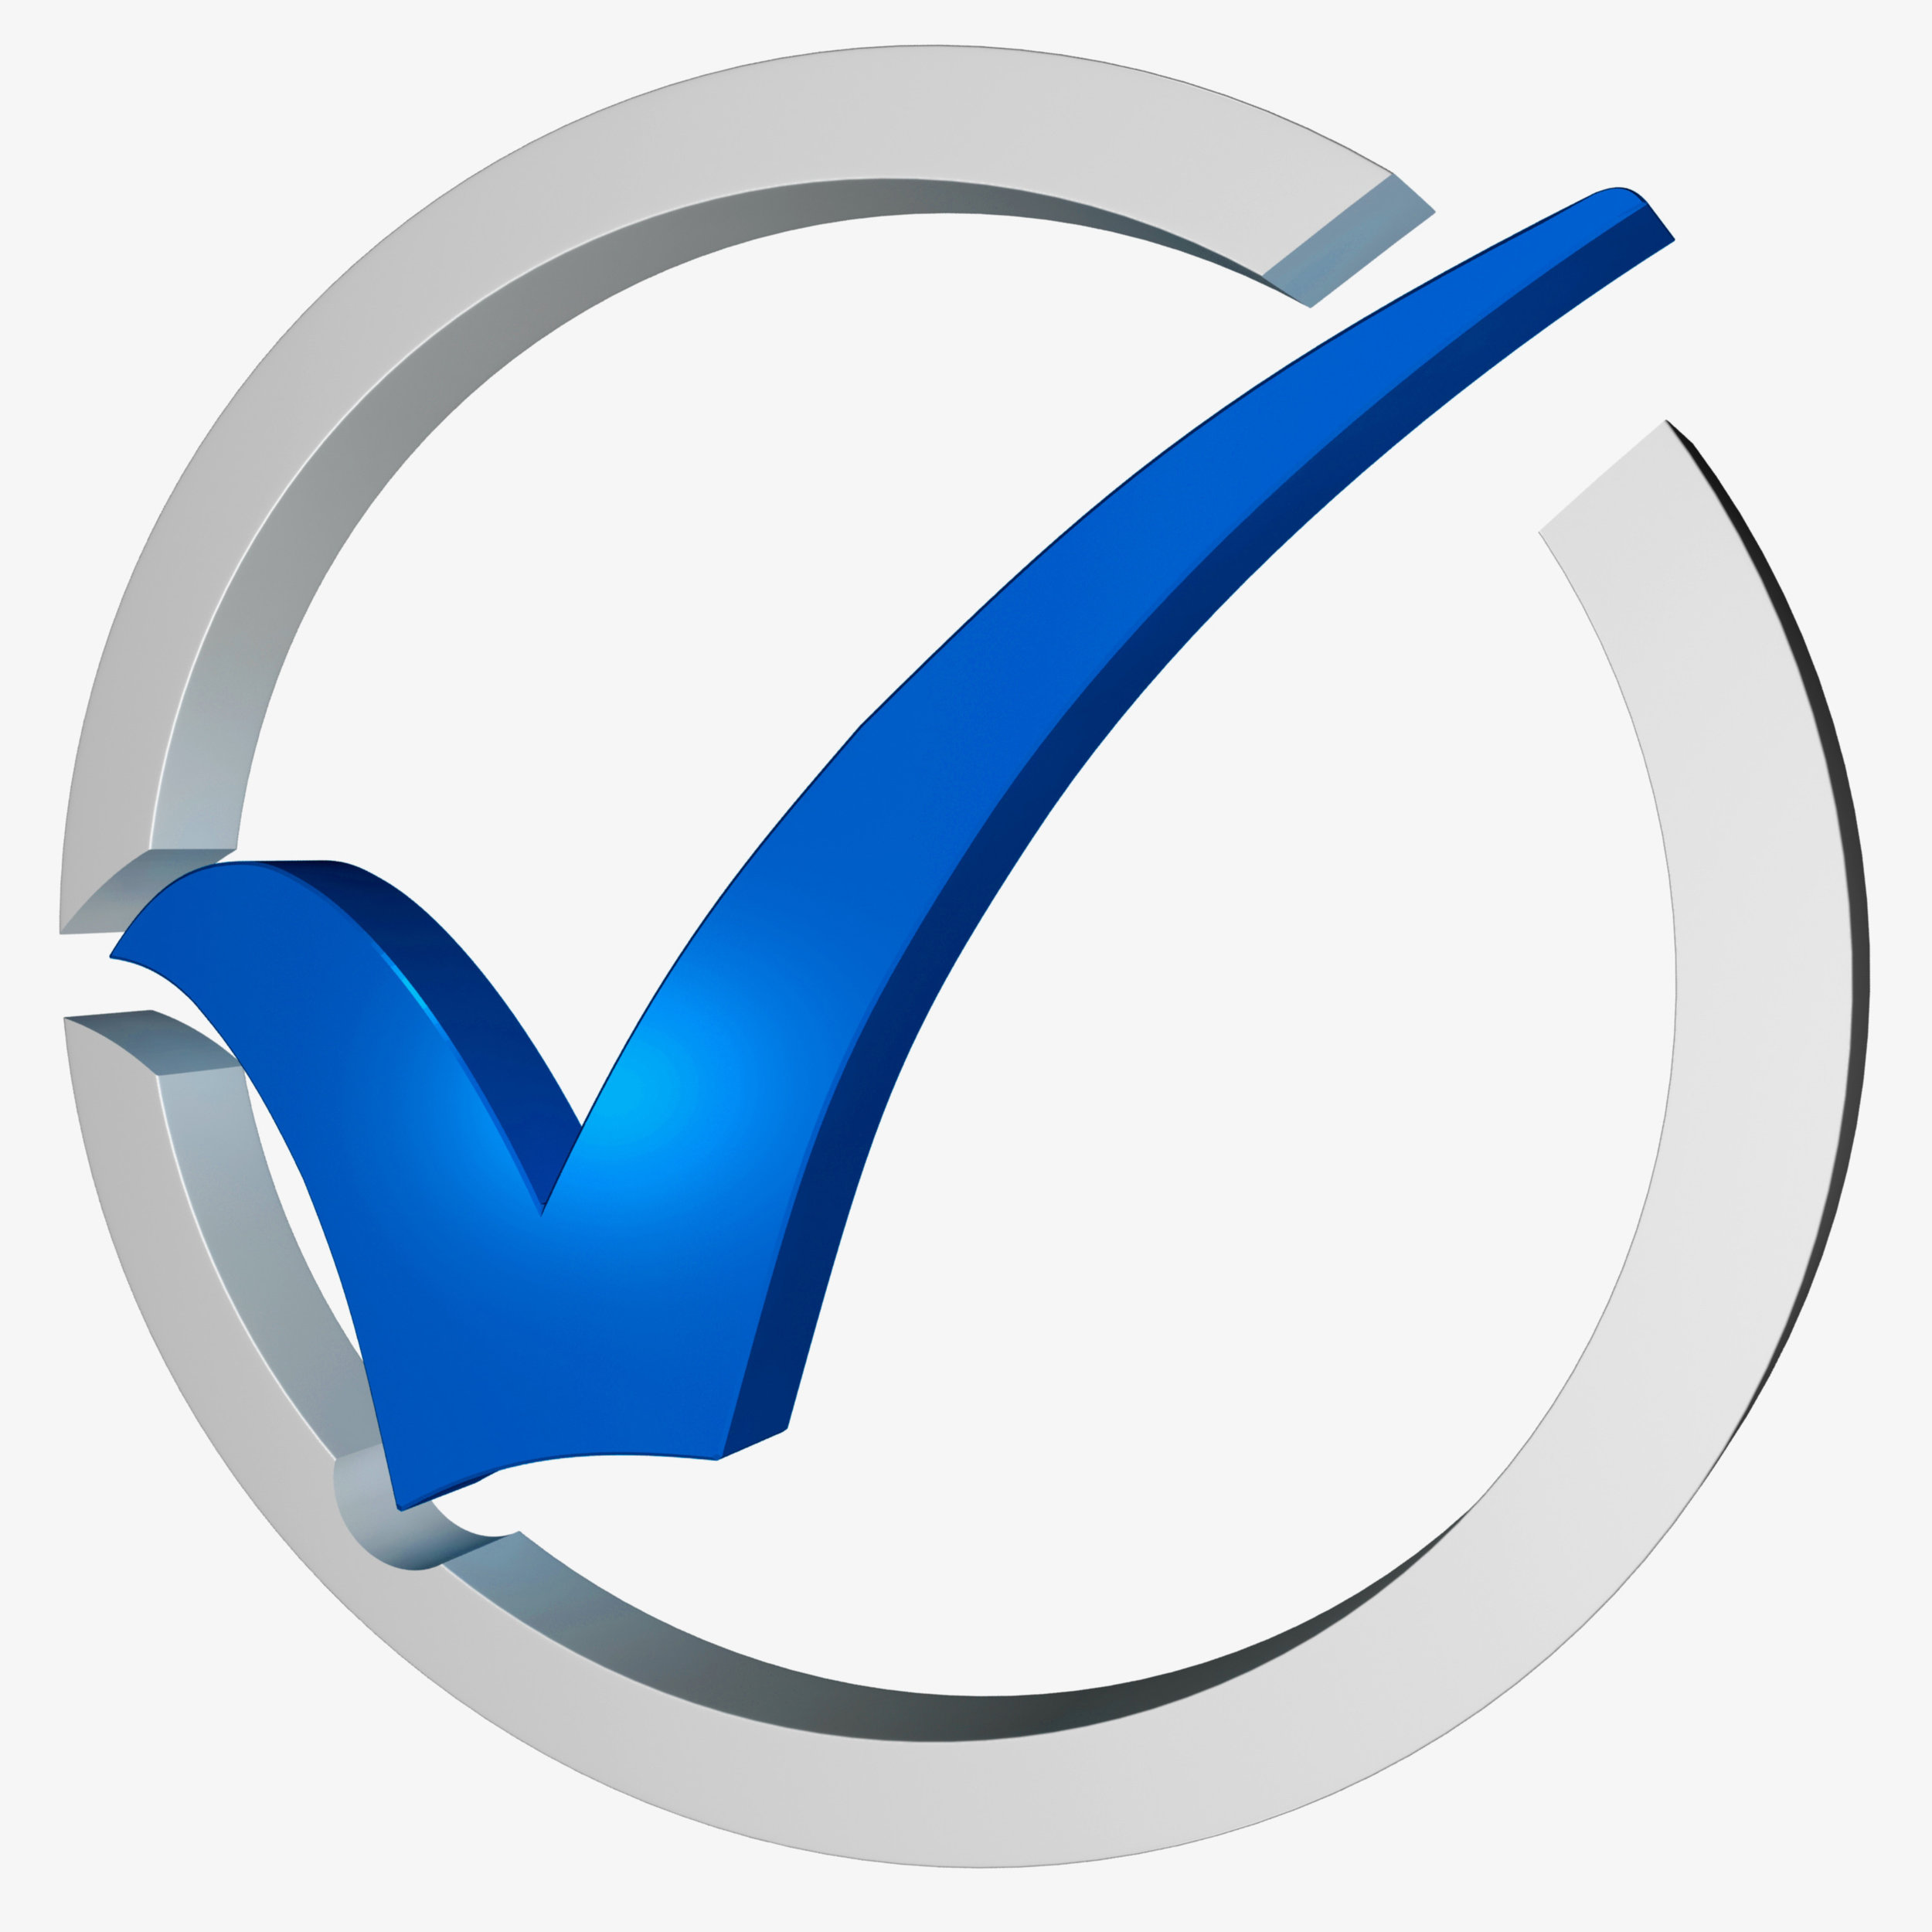 blue-tick-circled-shows-checked-and-verified_fkIV07P_.jpg